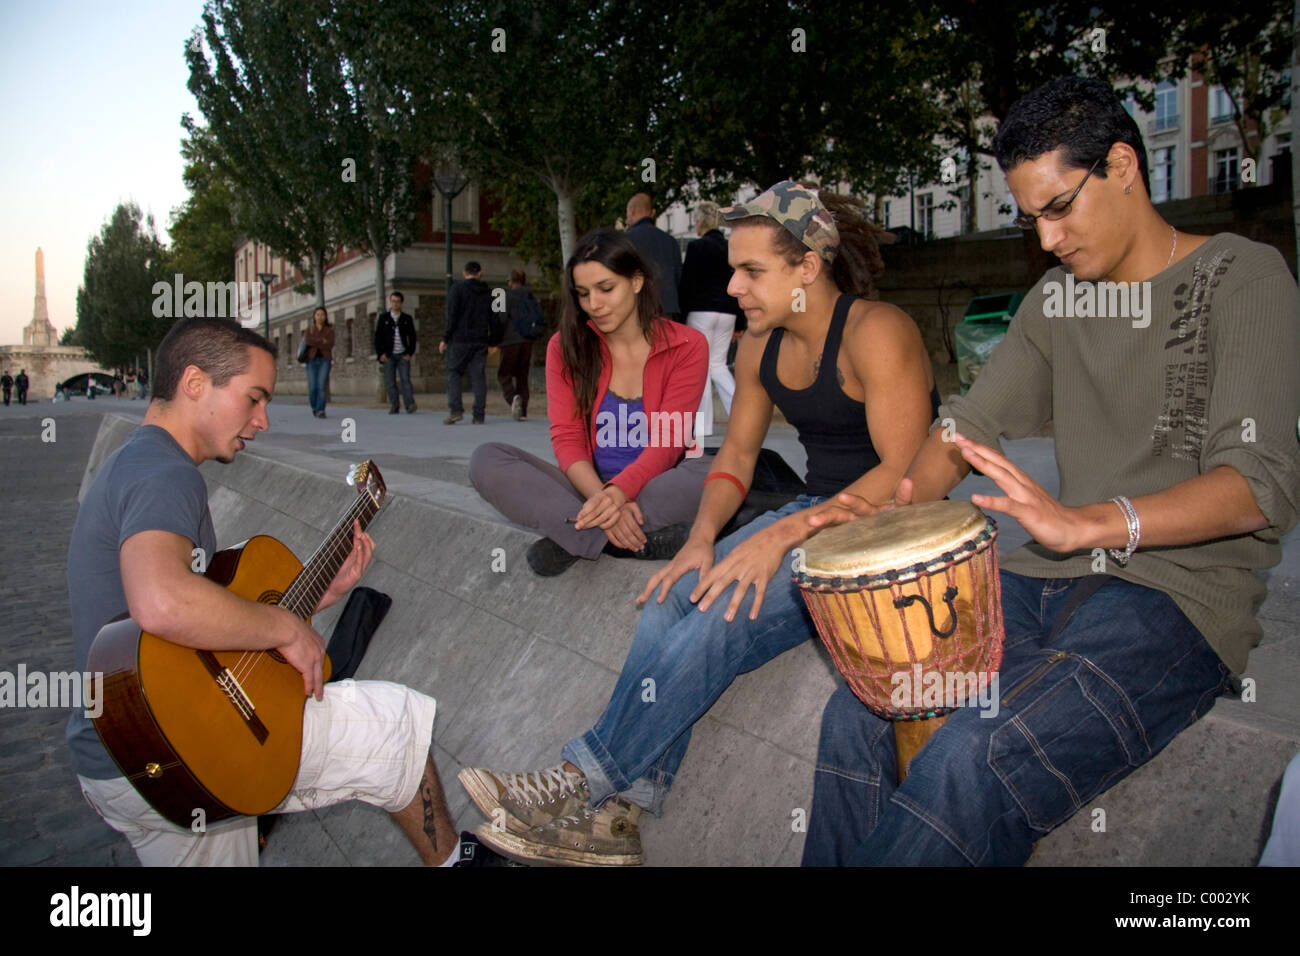 Young parisians play music along the River Seine in Paris, France. - Stock Image